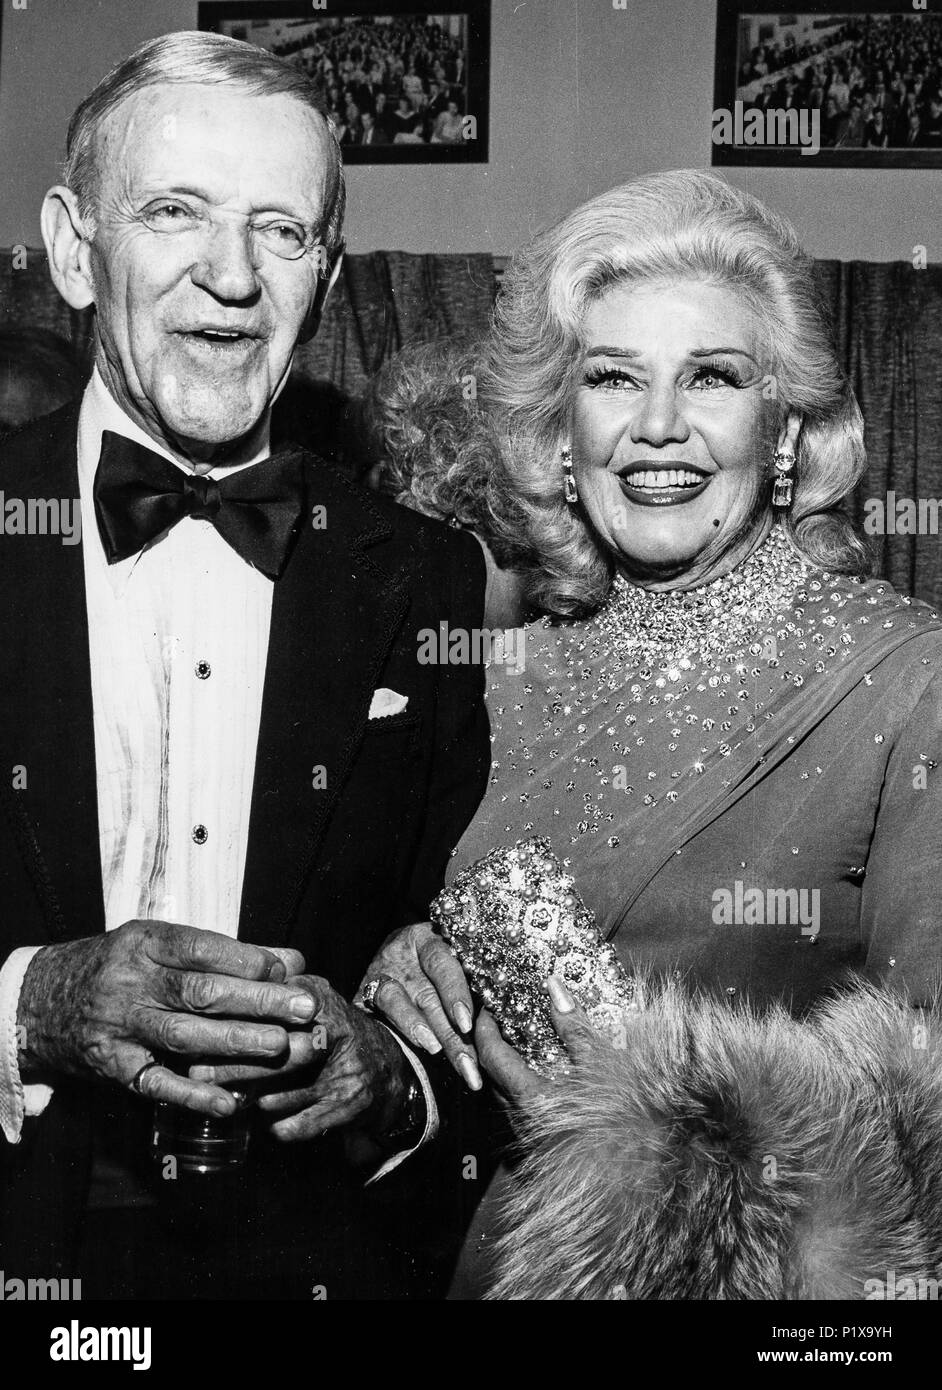 Ginger Rogers High Resolution Stock Photography And Images Alamy